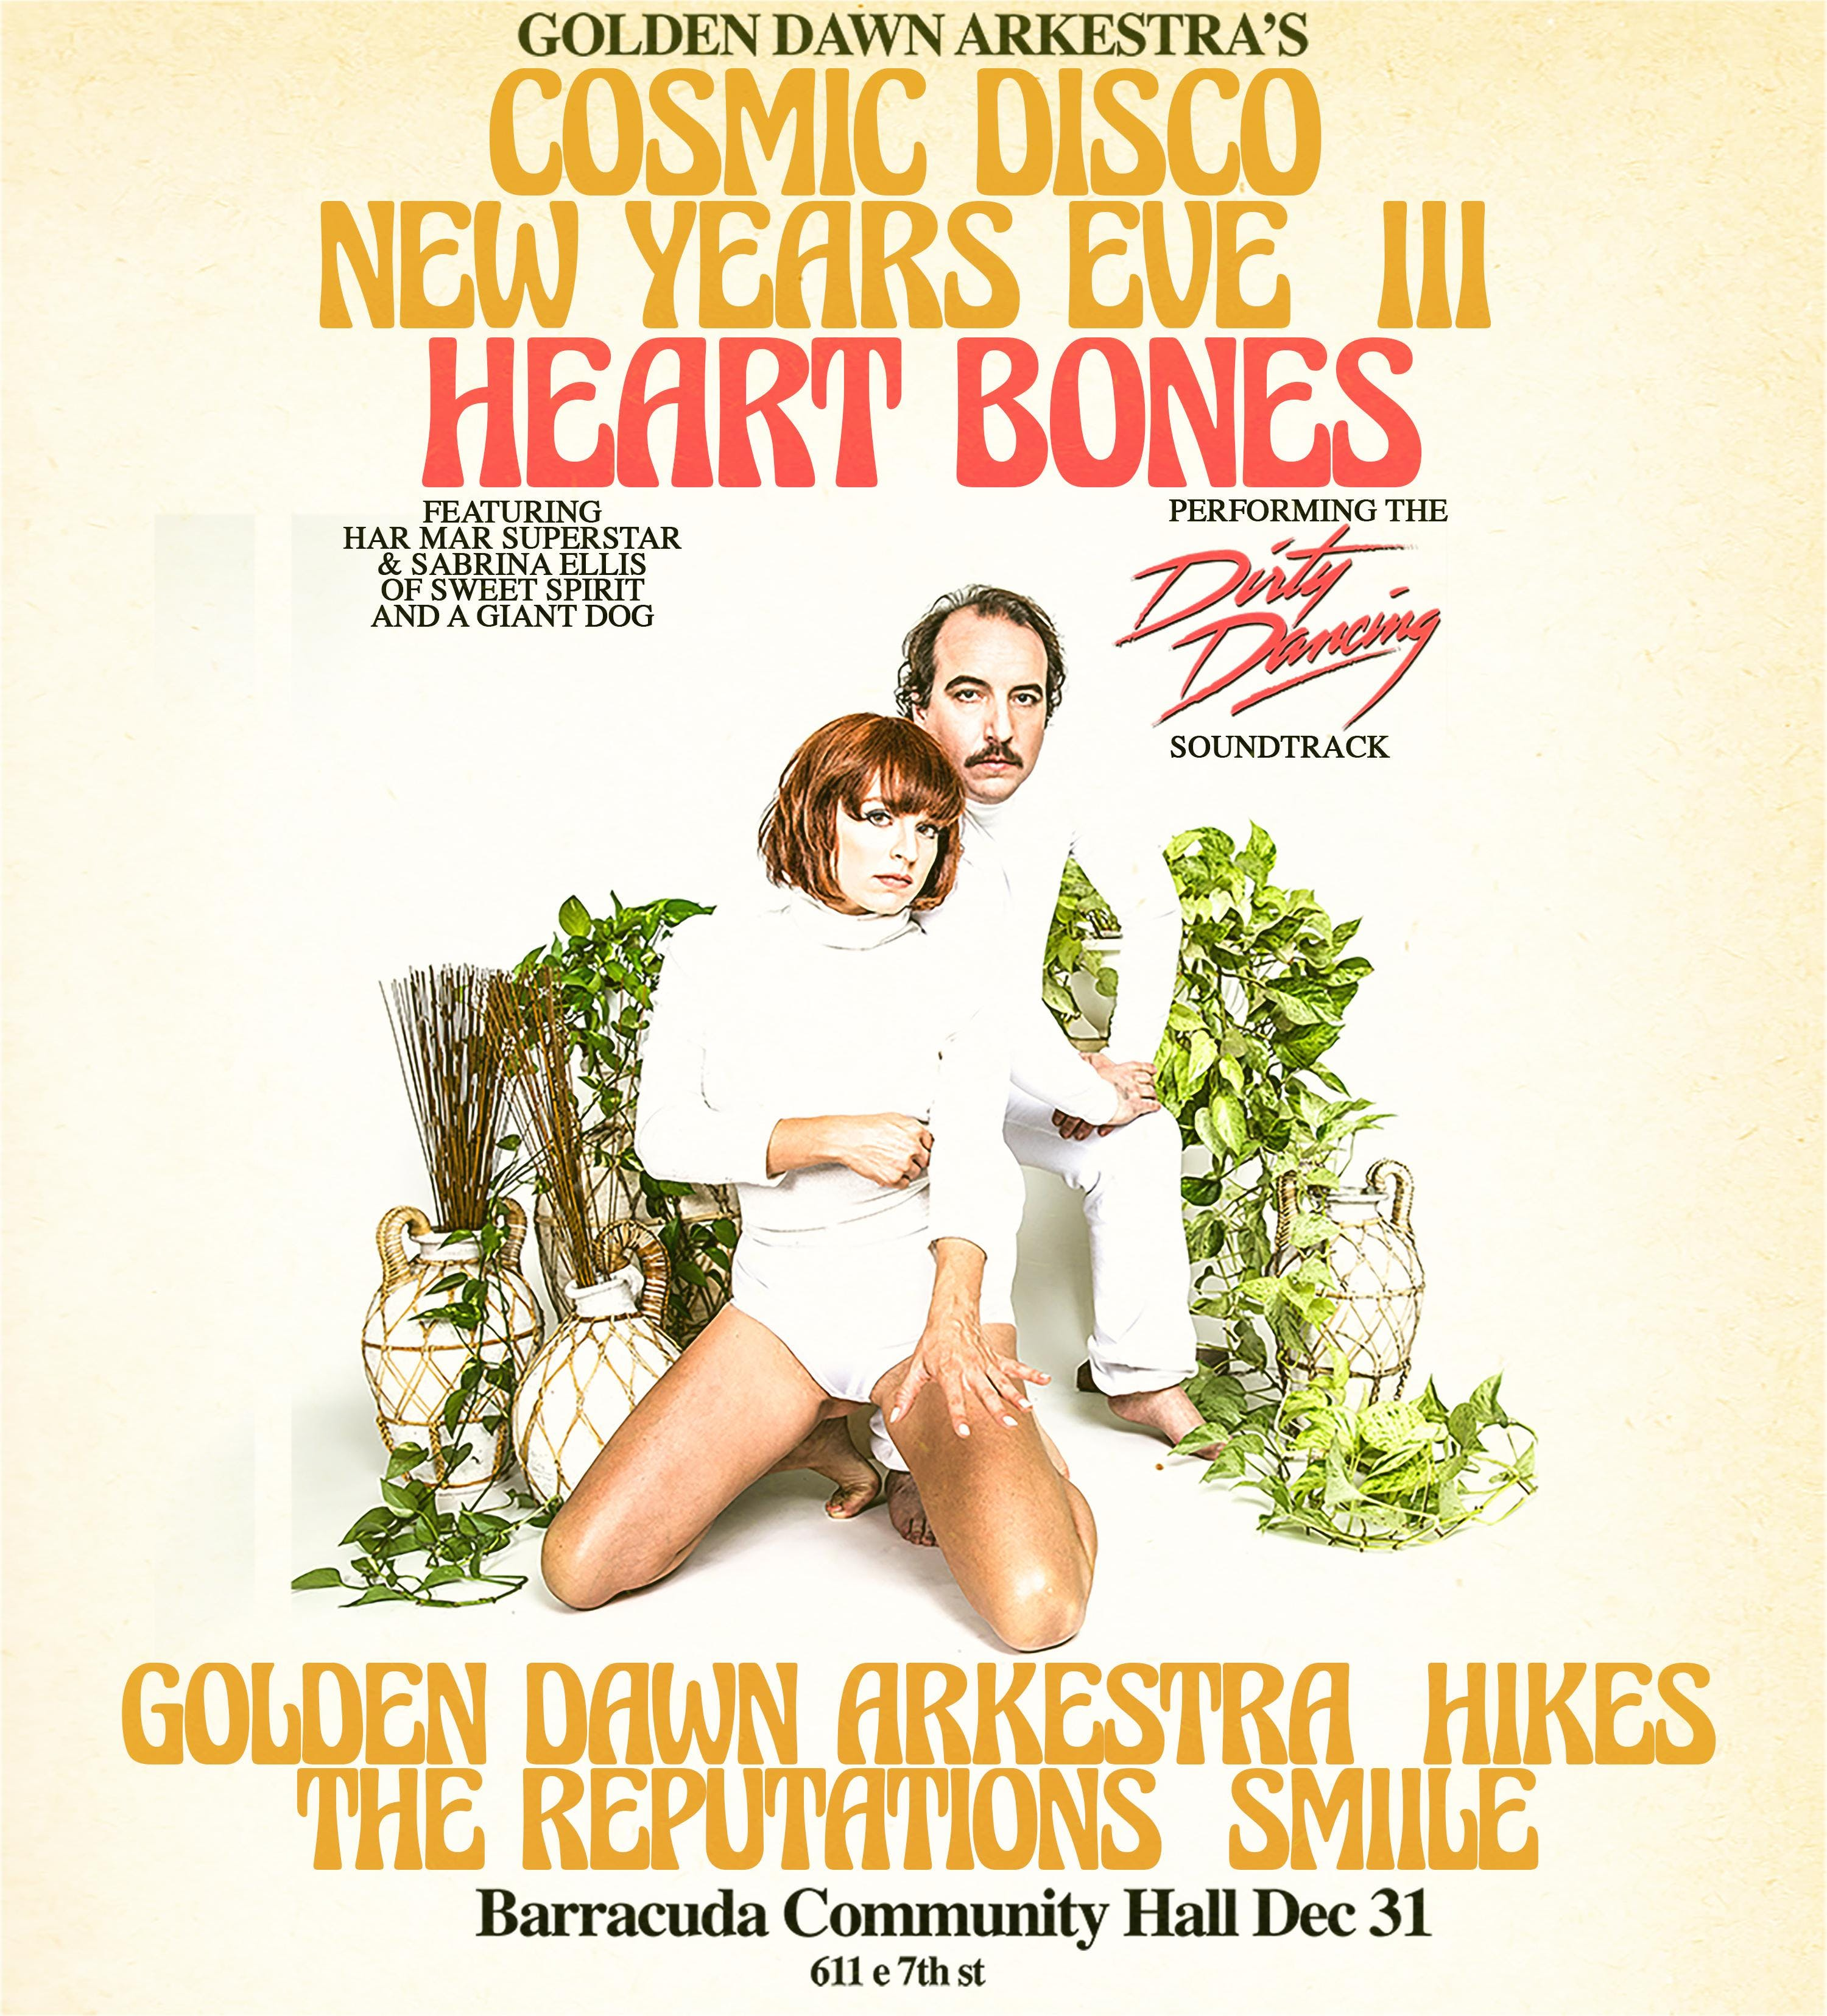 COSMIC DISCO NYE: Golden Dawn Arkestra with Heart Bones, Hikes, The Reputations, and SMiiLE